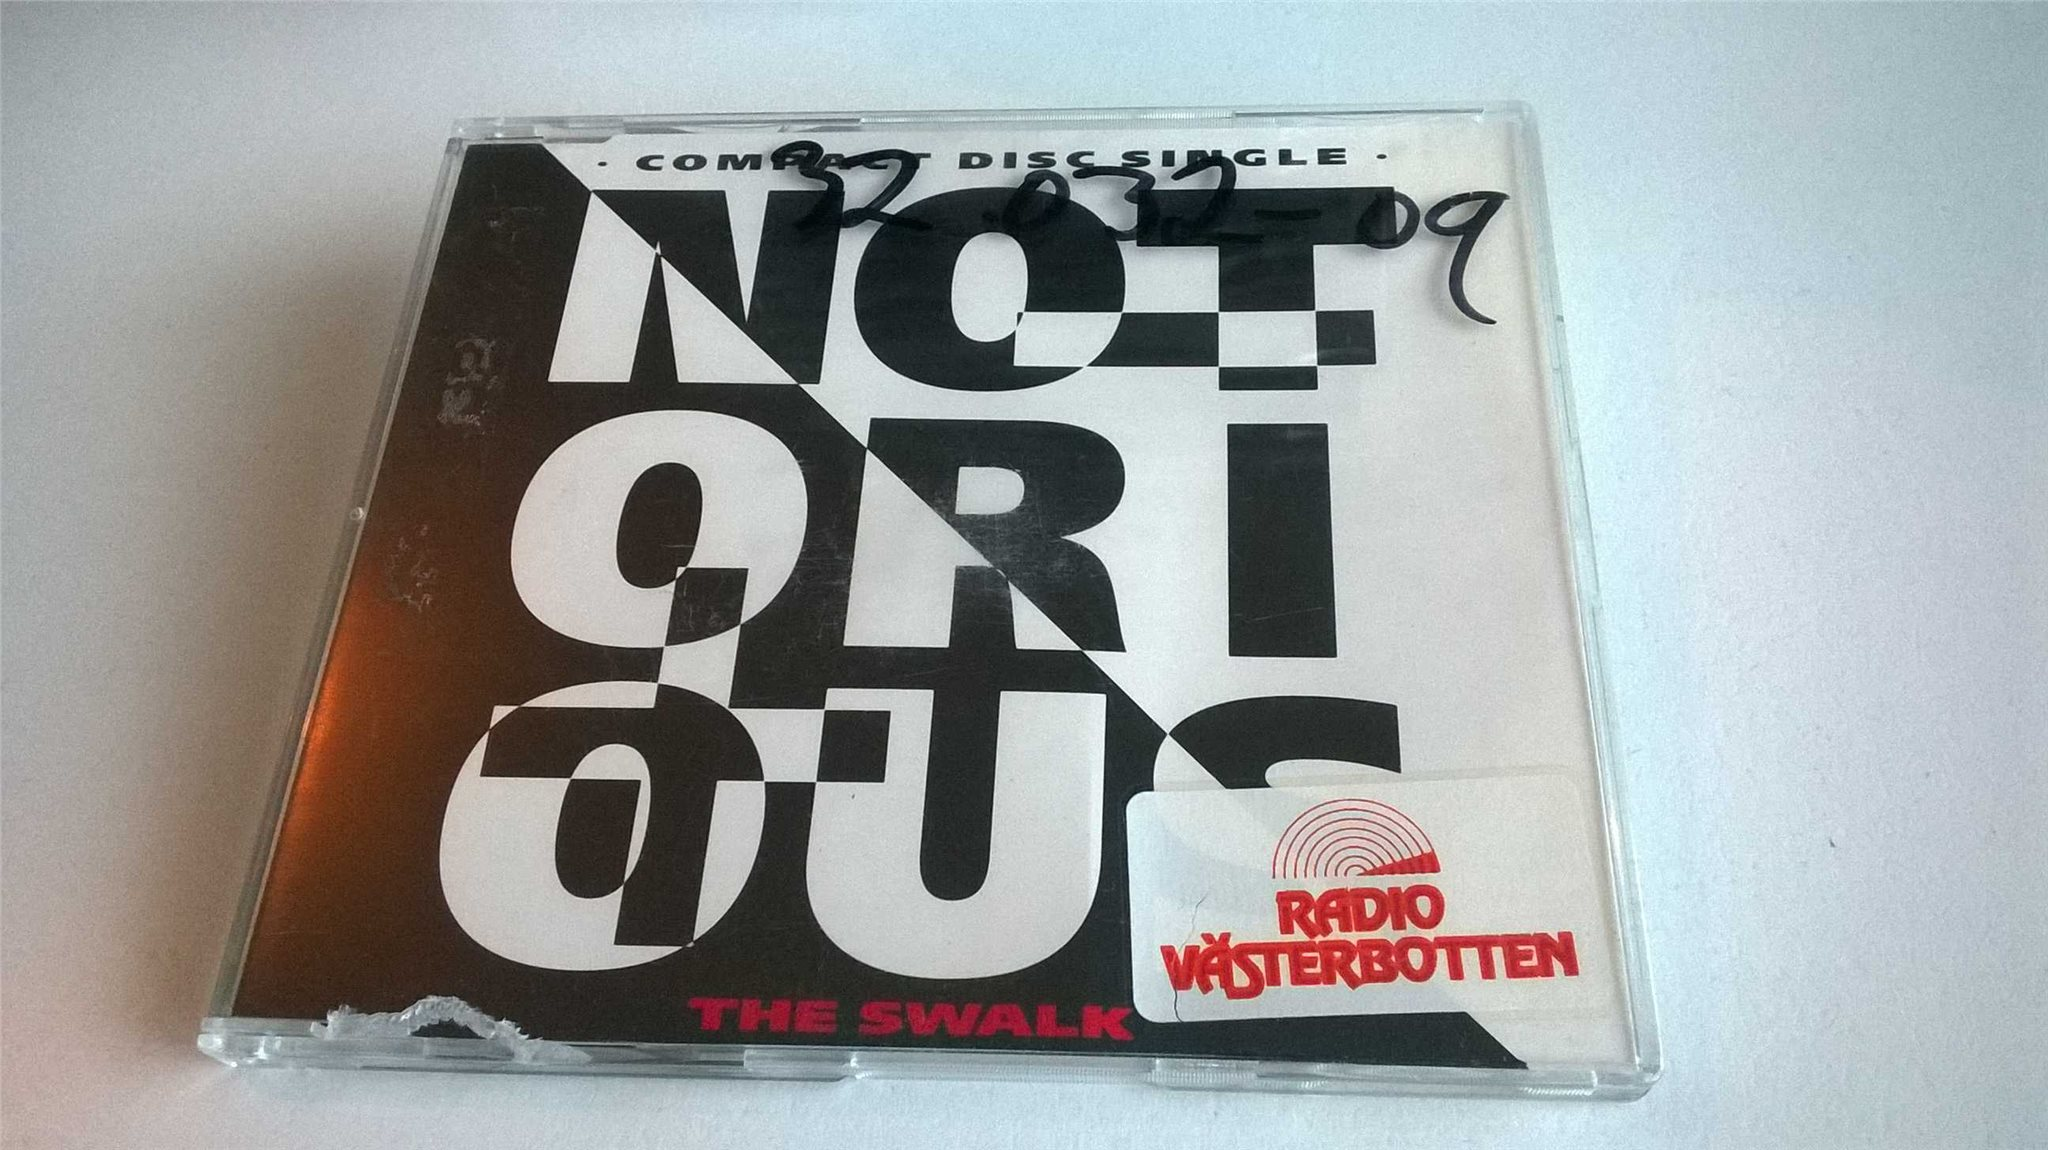 Notorious - The Swalk, CD, Single